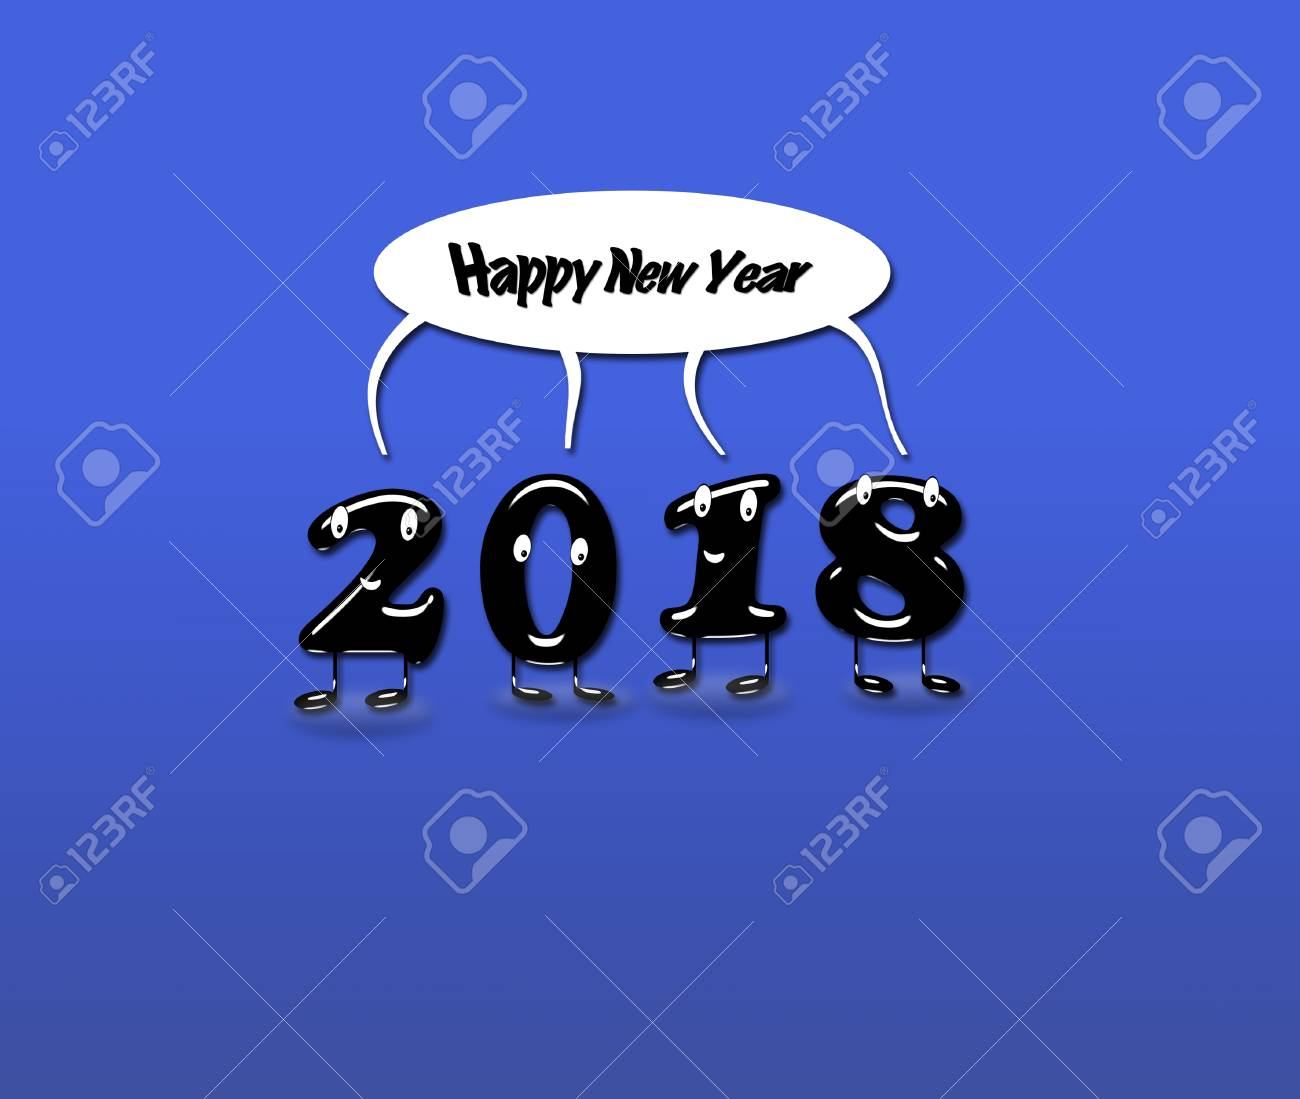 Cartoon Of 2018 Numerals With Speech Buble With Text Happy New     Cartoon of 2018 numerals with speech buble with text Happy New Year on blue  background